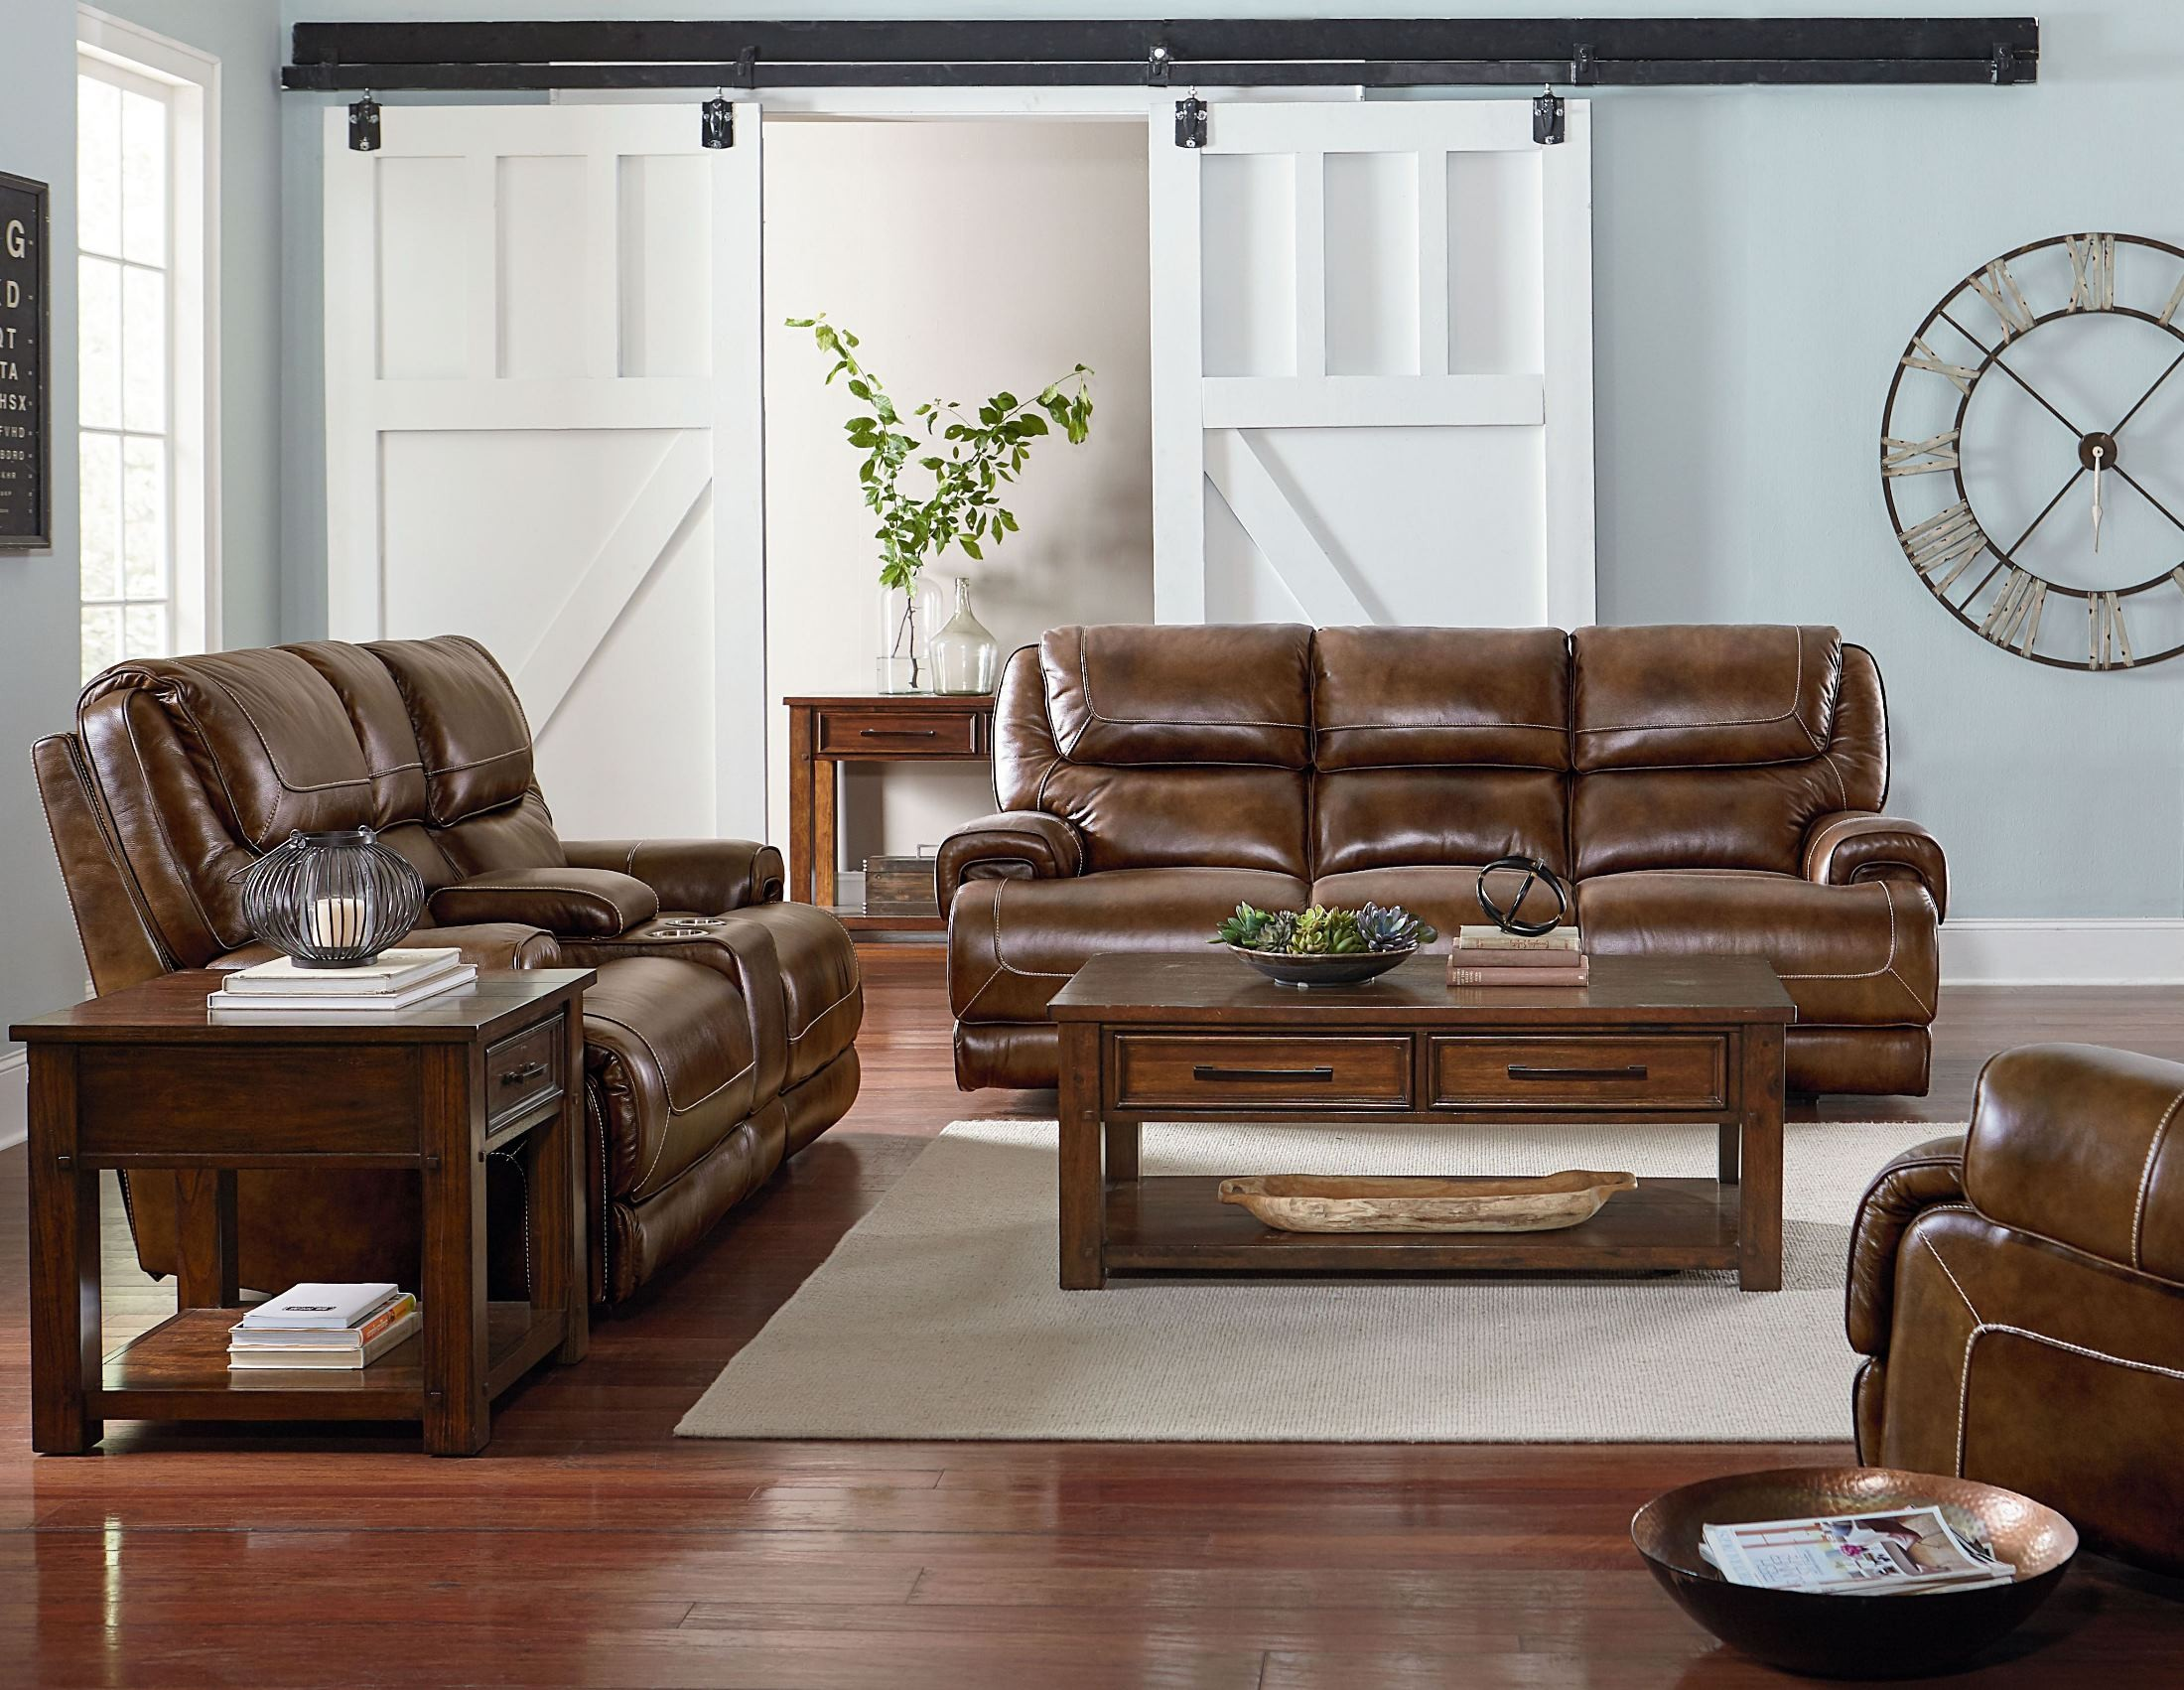 Cameron Golden Tobacco Brown Occasional Table Set from Standard